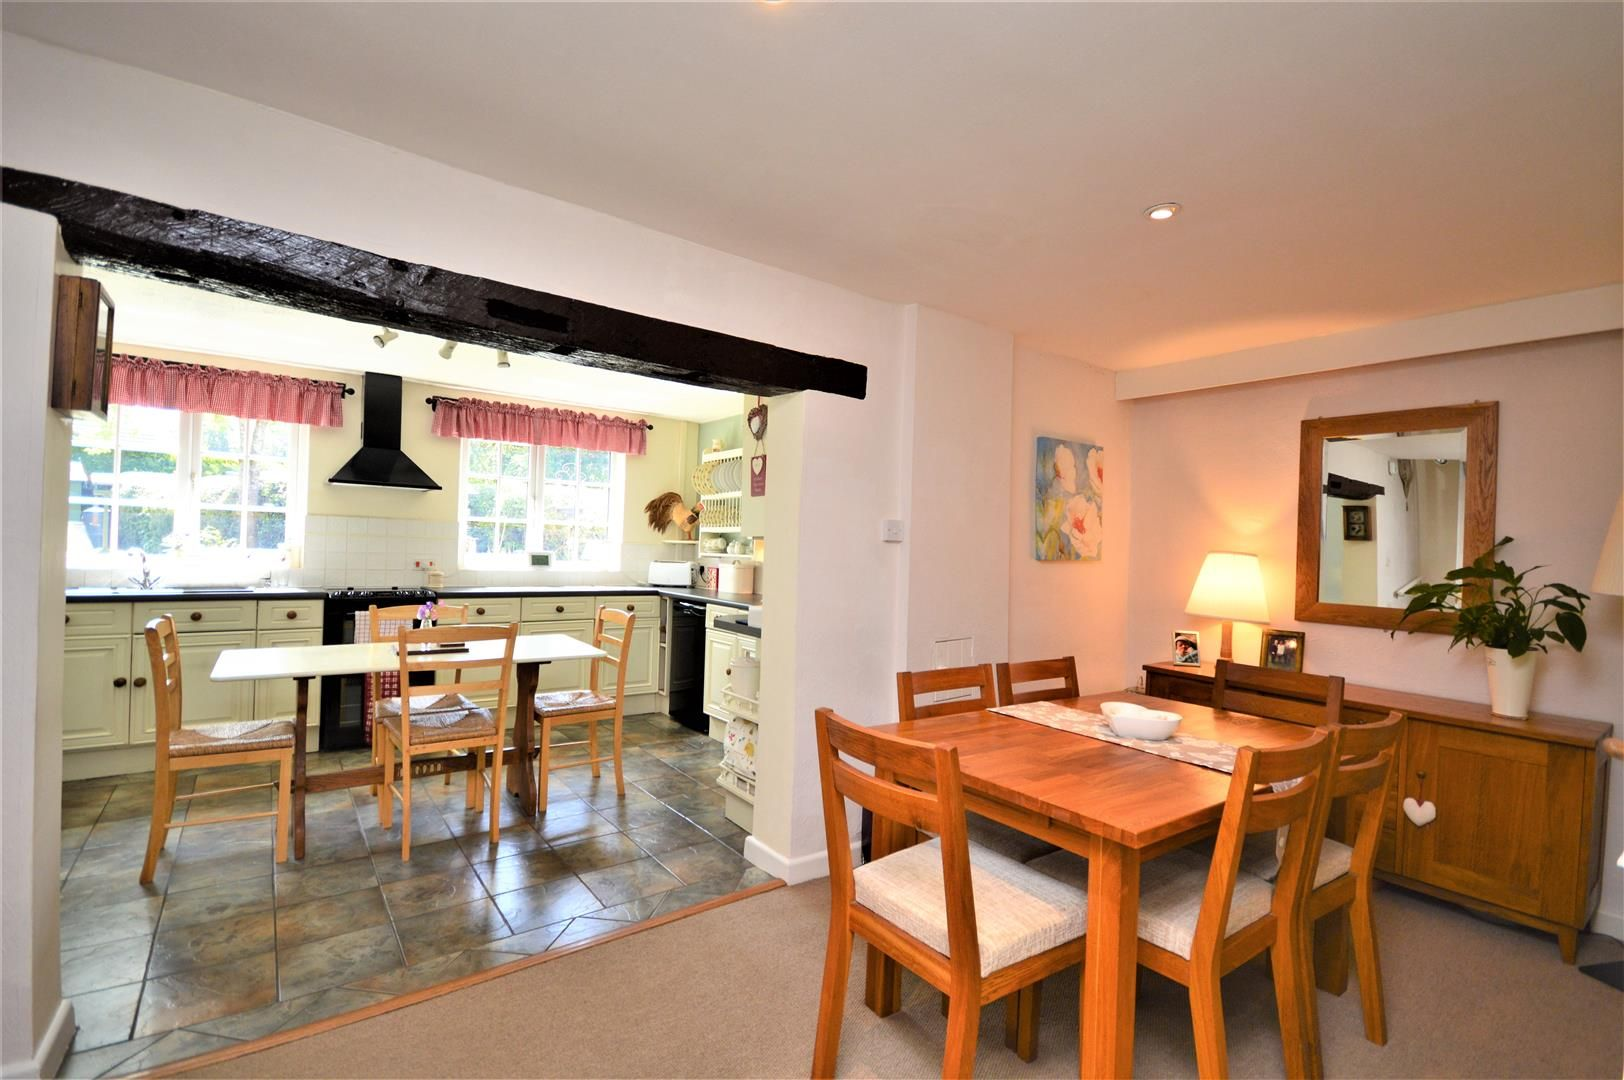 3 bed semi-detached for sale in Madley  - Property Image 4